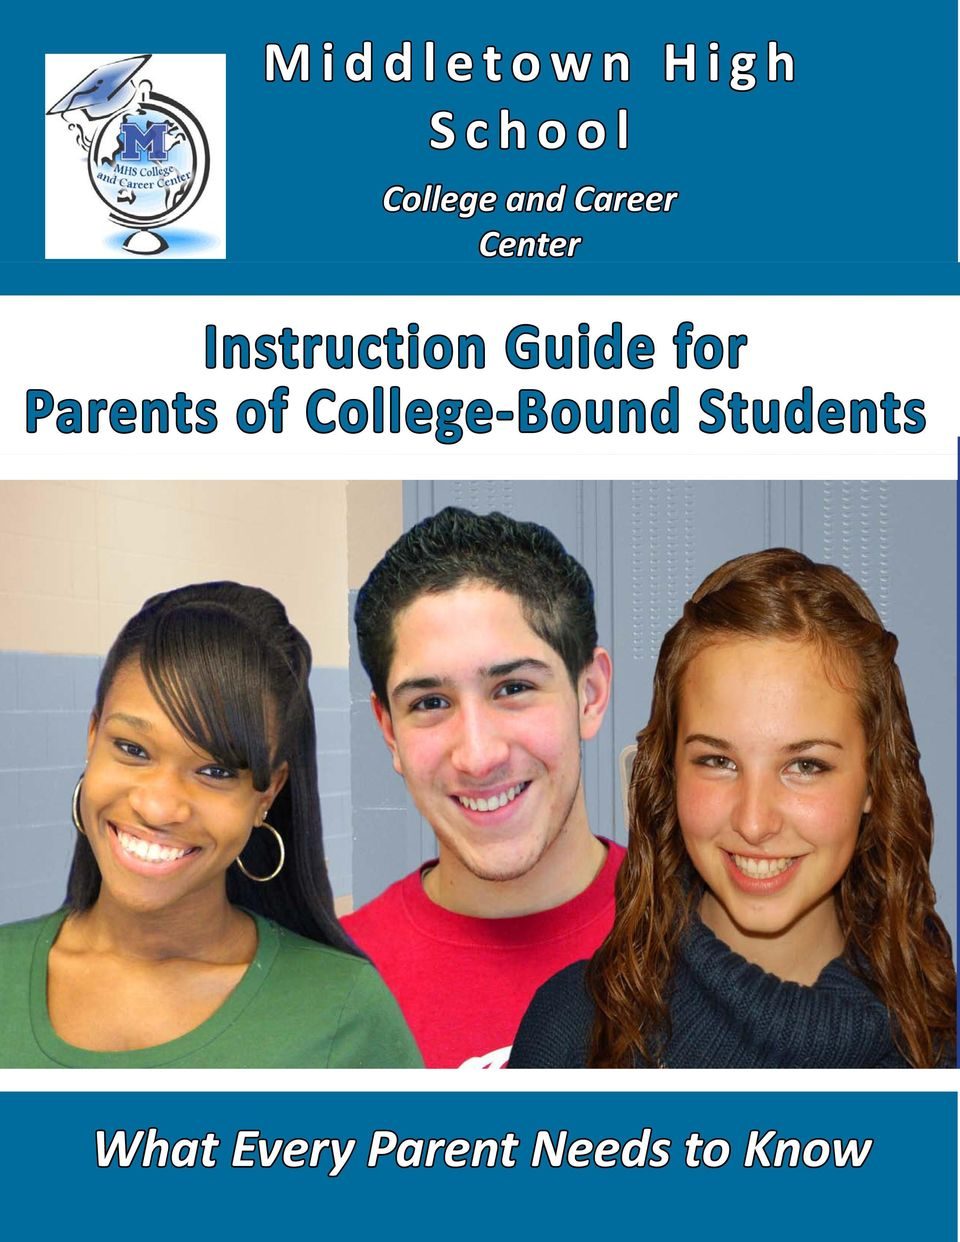 Guide for Parents of